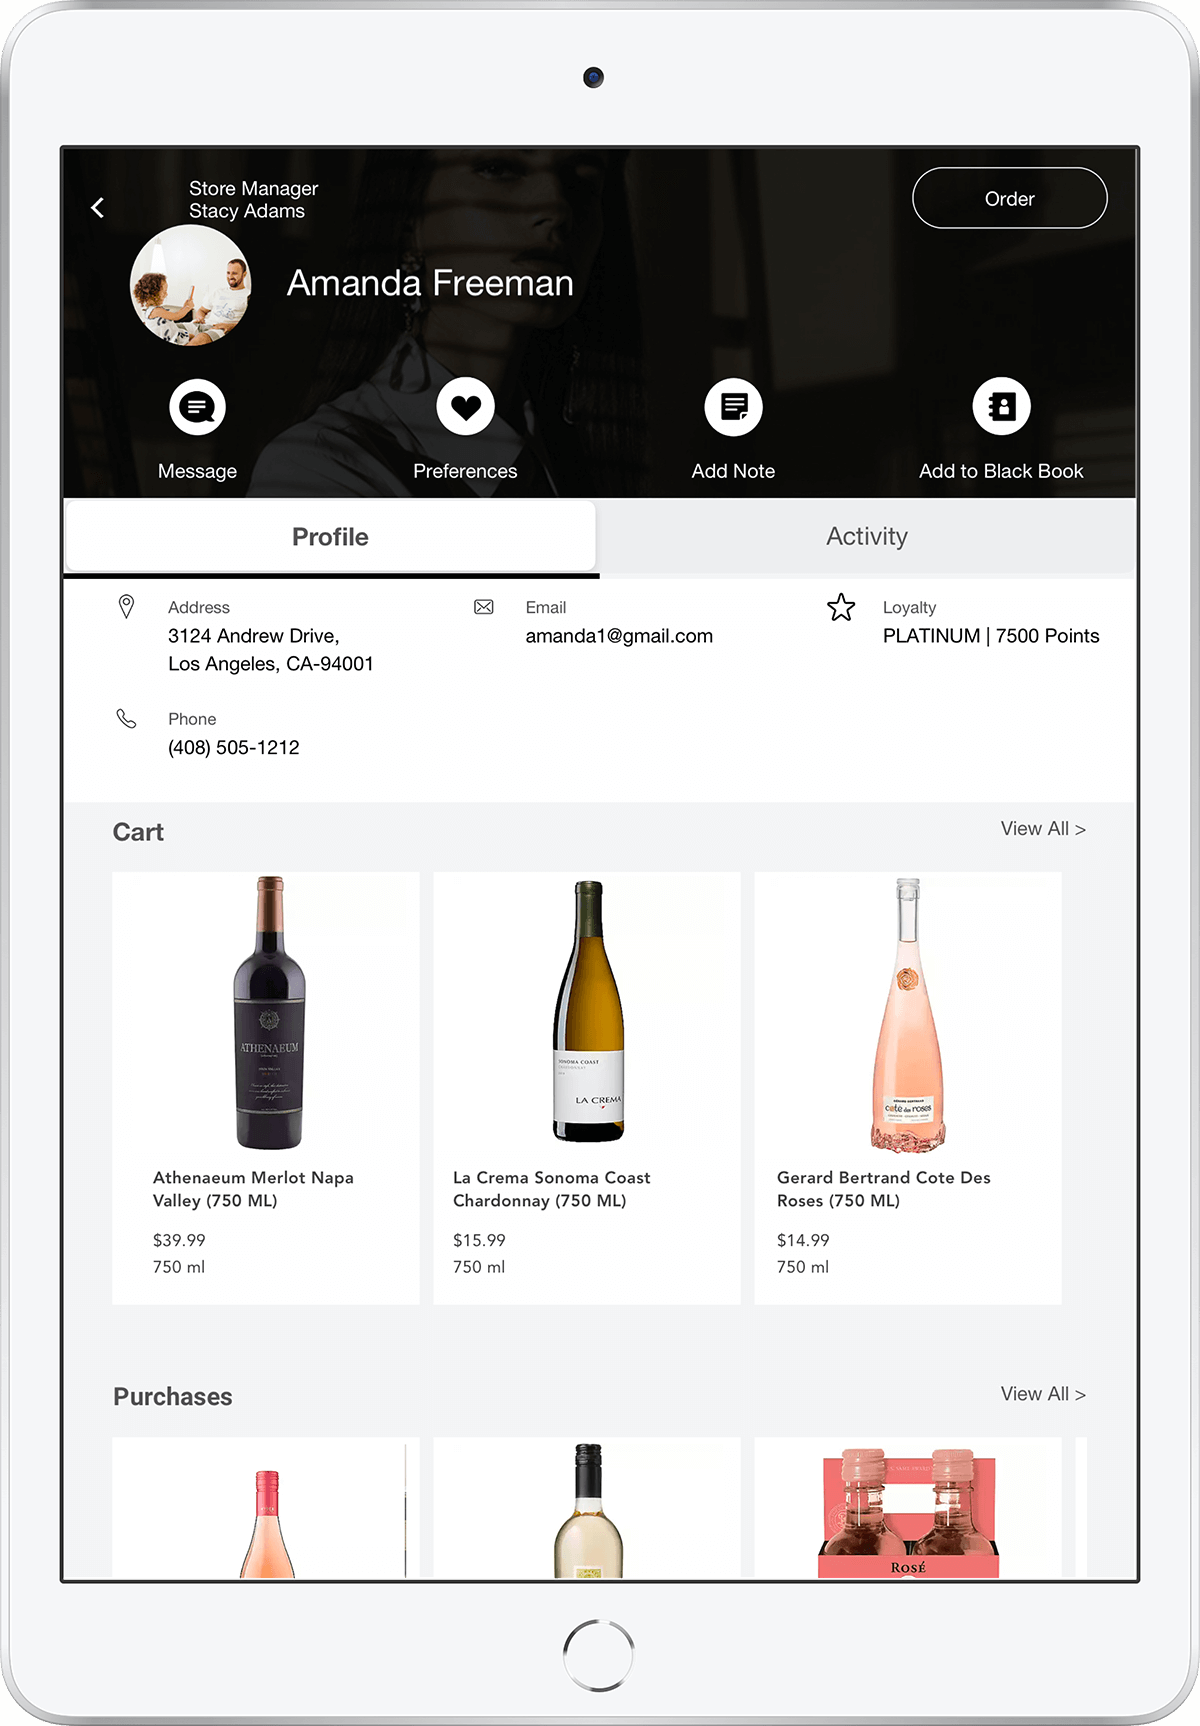 Winery Point of sale software by PredictSpring